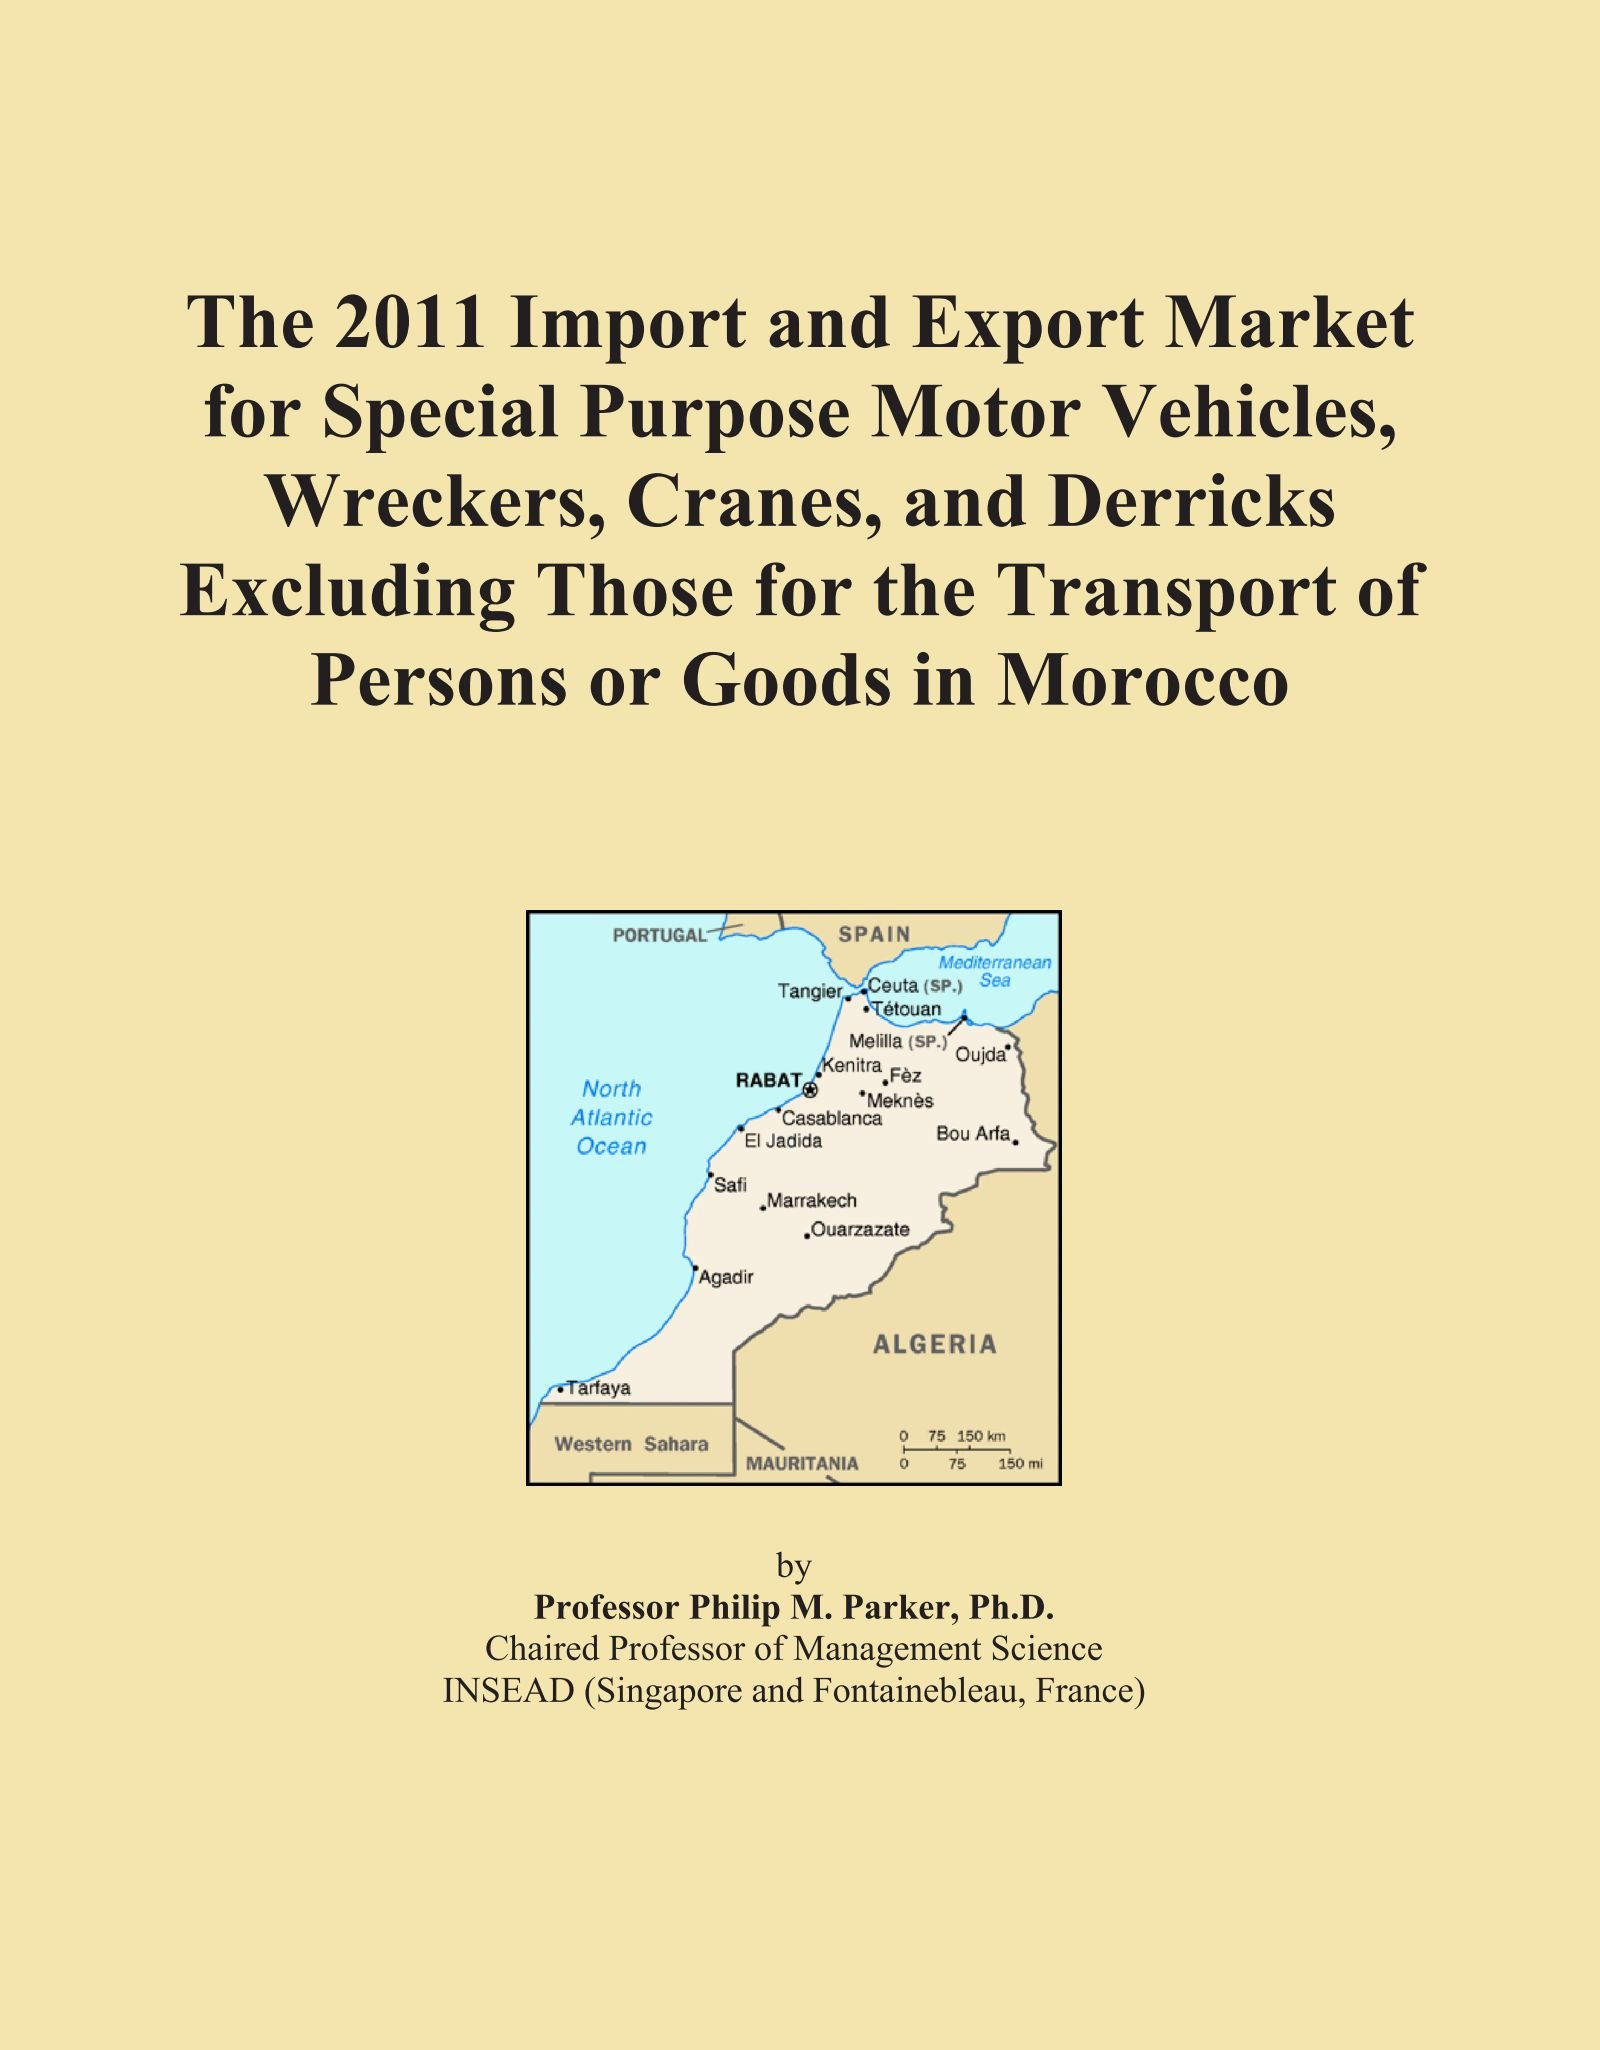 Download The 2011 Import and Export Market for Special Purpose Motor Vehicles, Wreckers, Cranes, and Derricks Excluding Those for the Transport of Persons or Goods in Morocco PDF